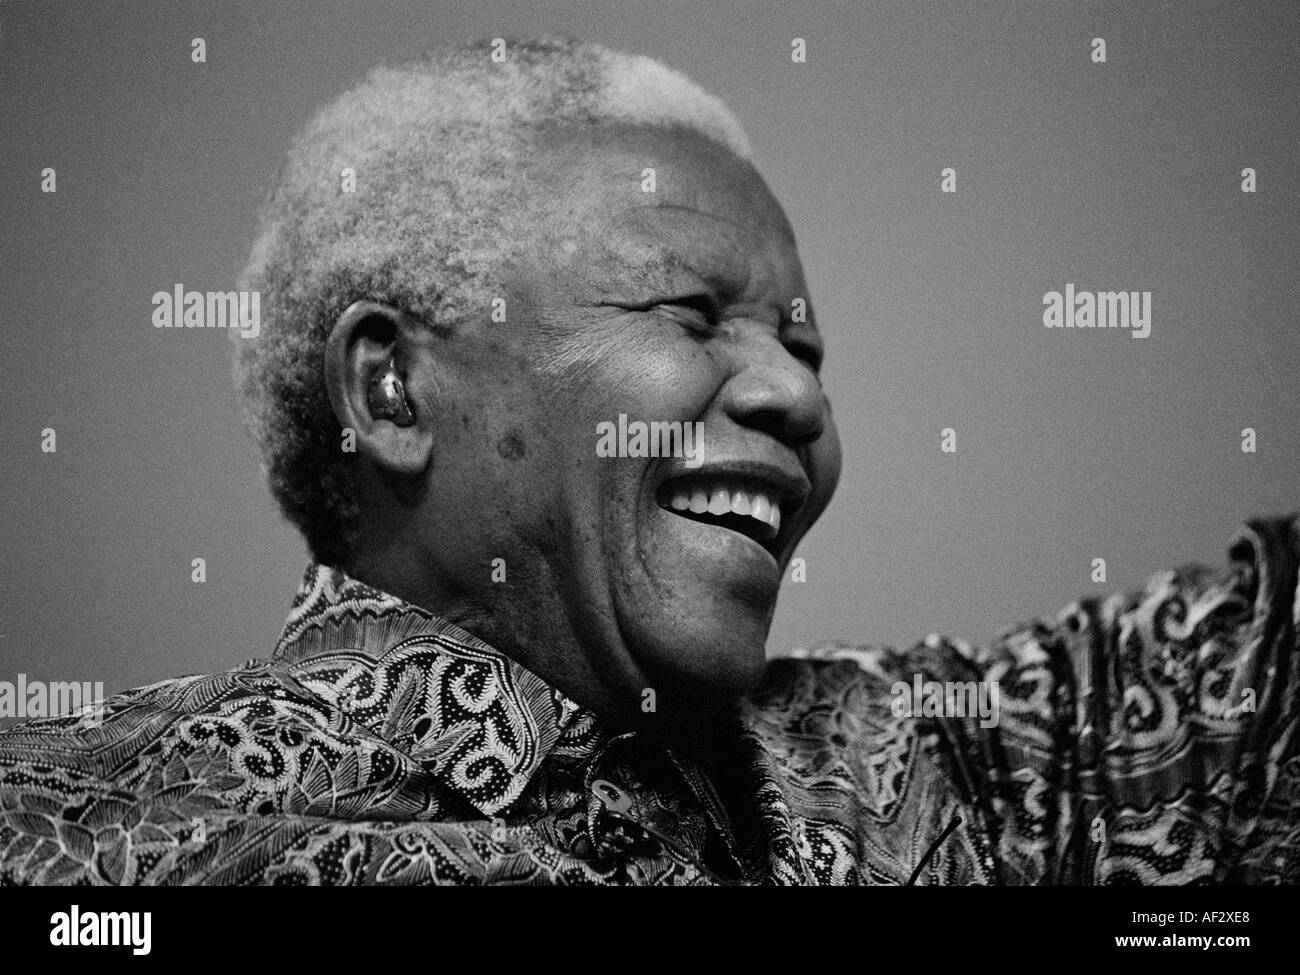 Former President of South Africa, Nelson Mandela, receives an ovation from Labour Party delegates. Copyright Terence Bunch. - Stock Image